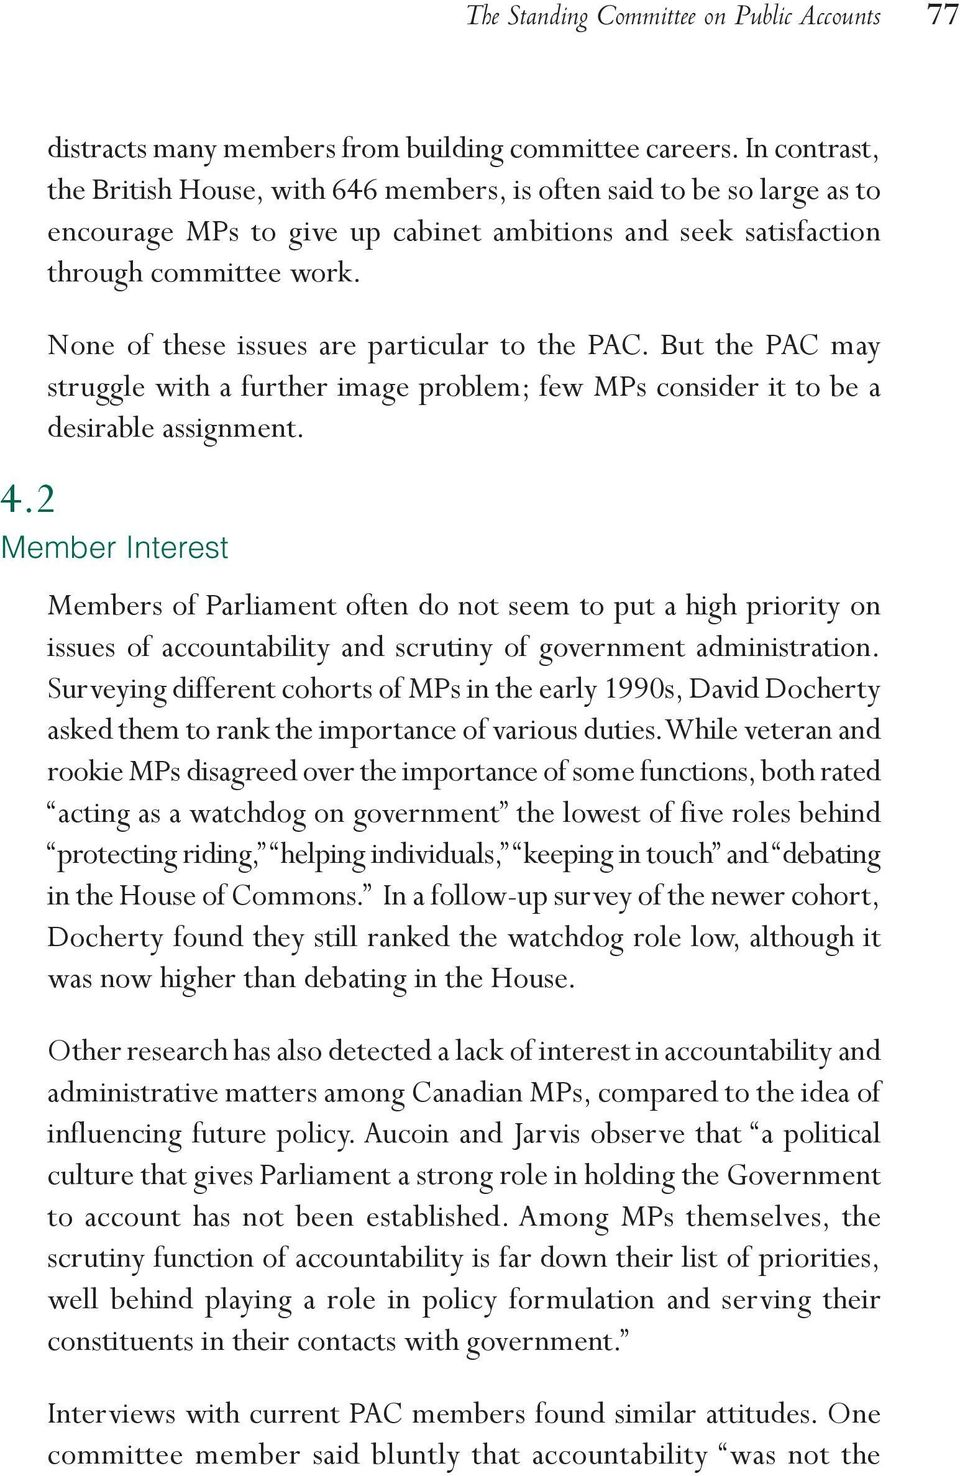 None of these issues are particular to the PAC. But the PAC may struggle with a further image problem; few MPs consider it to be a desirable assignment. 4.